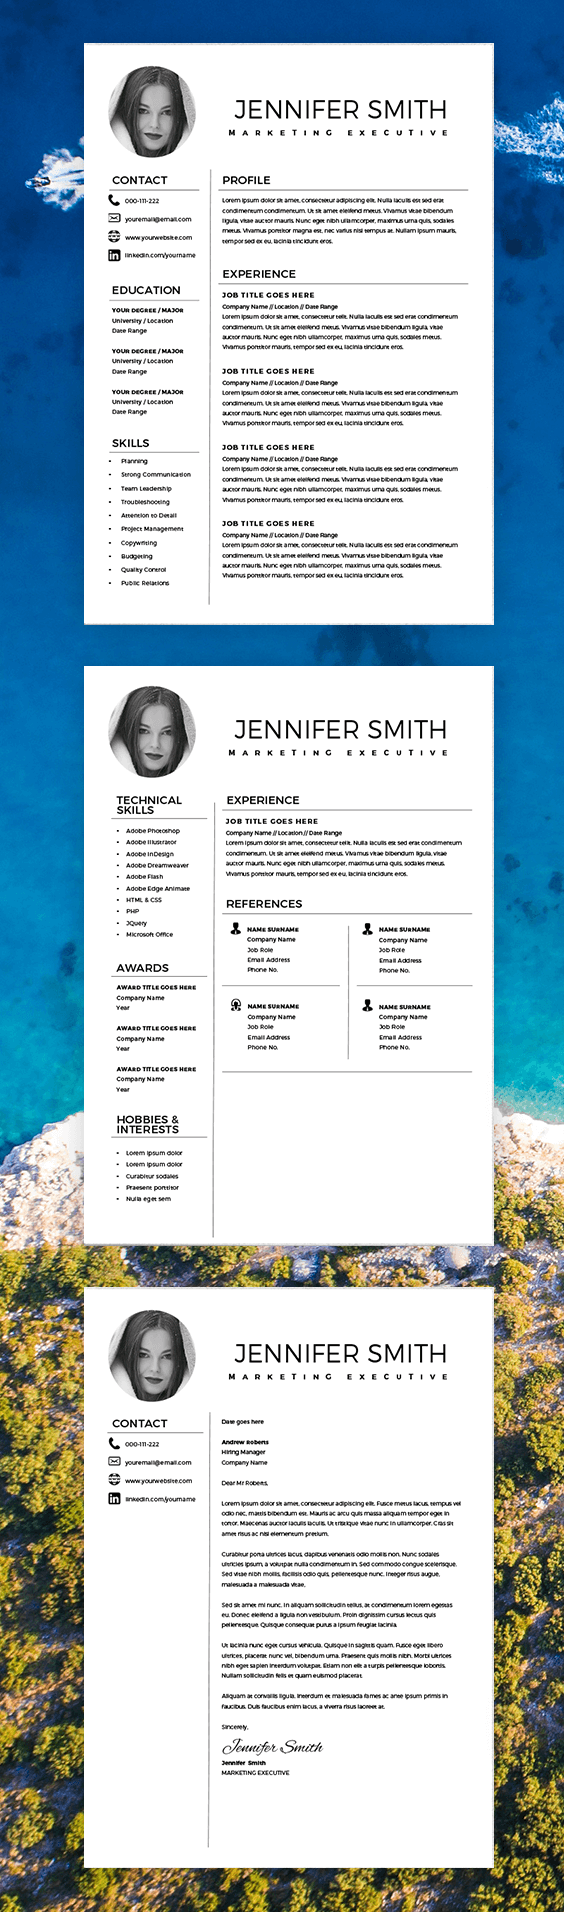 Resume With Photo, Marketing Resume Template, Resume Template Word